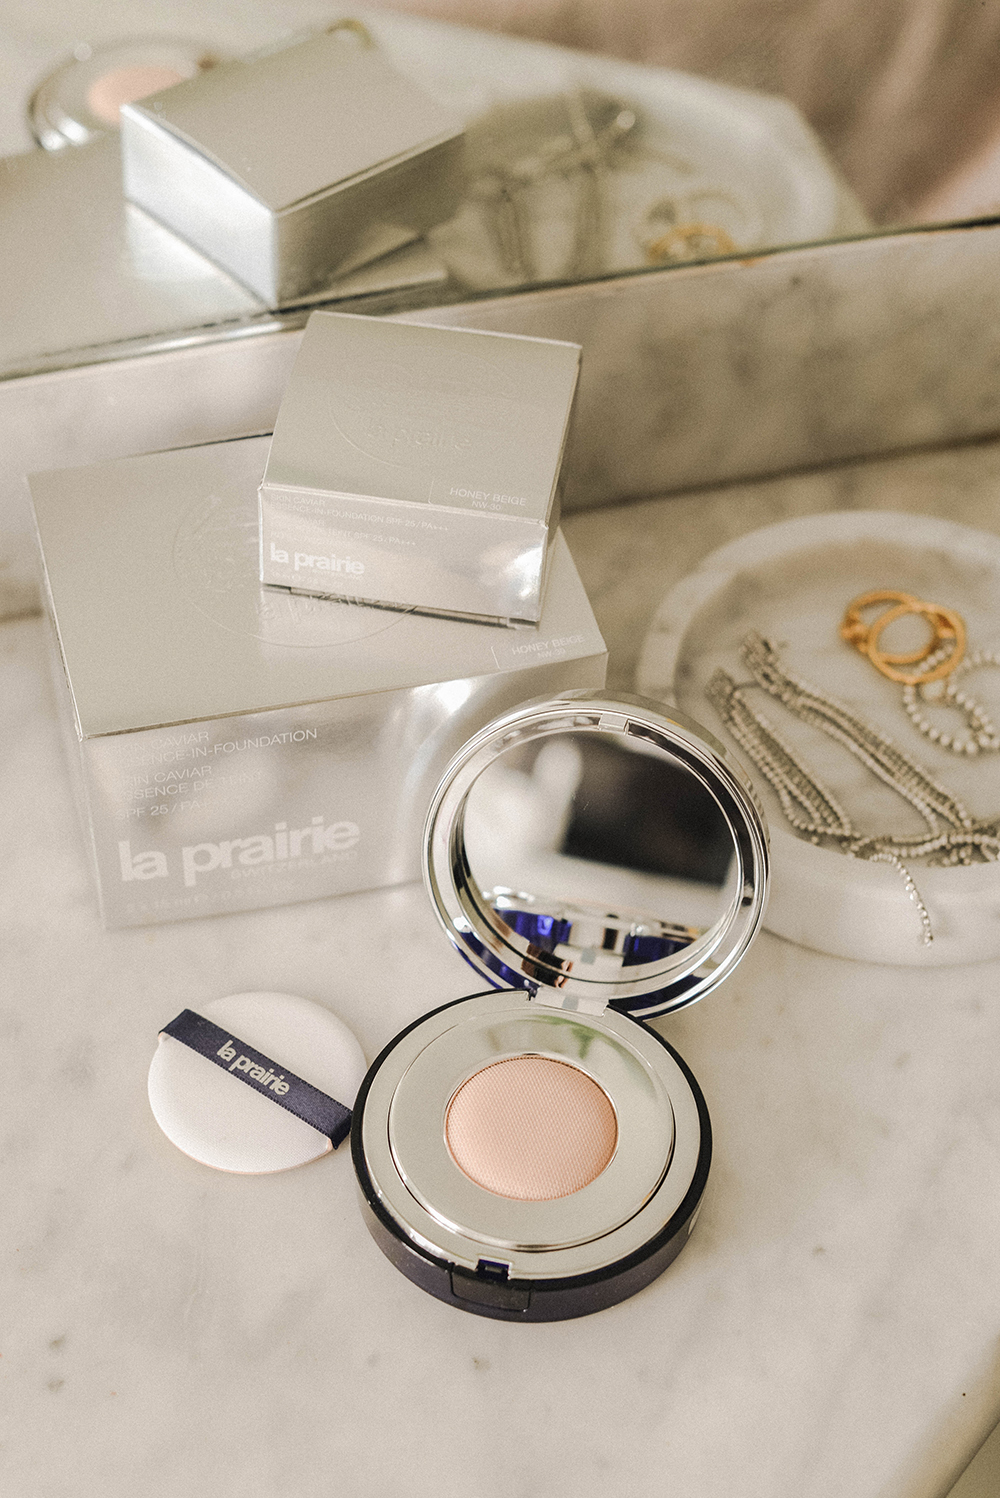 la prairie fondotinta 2018 Essence in Foundation Skin Caviar Collection